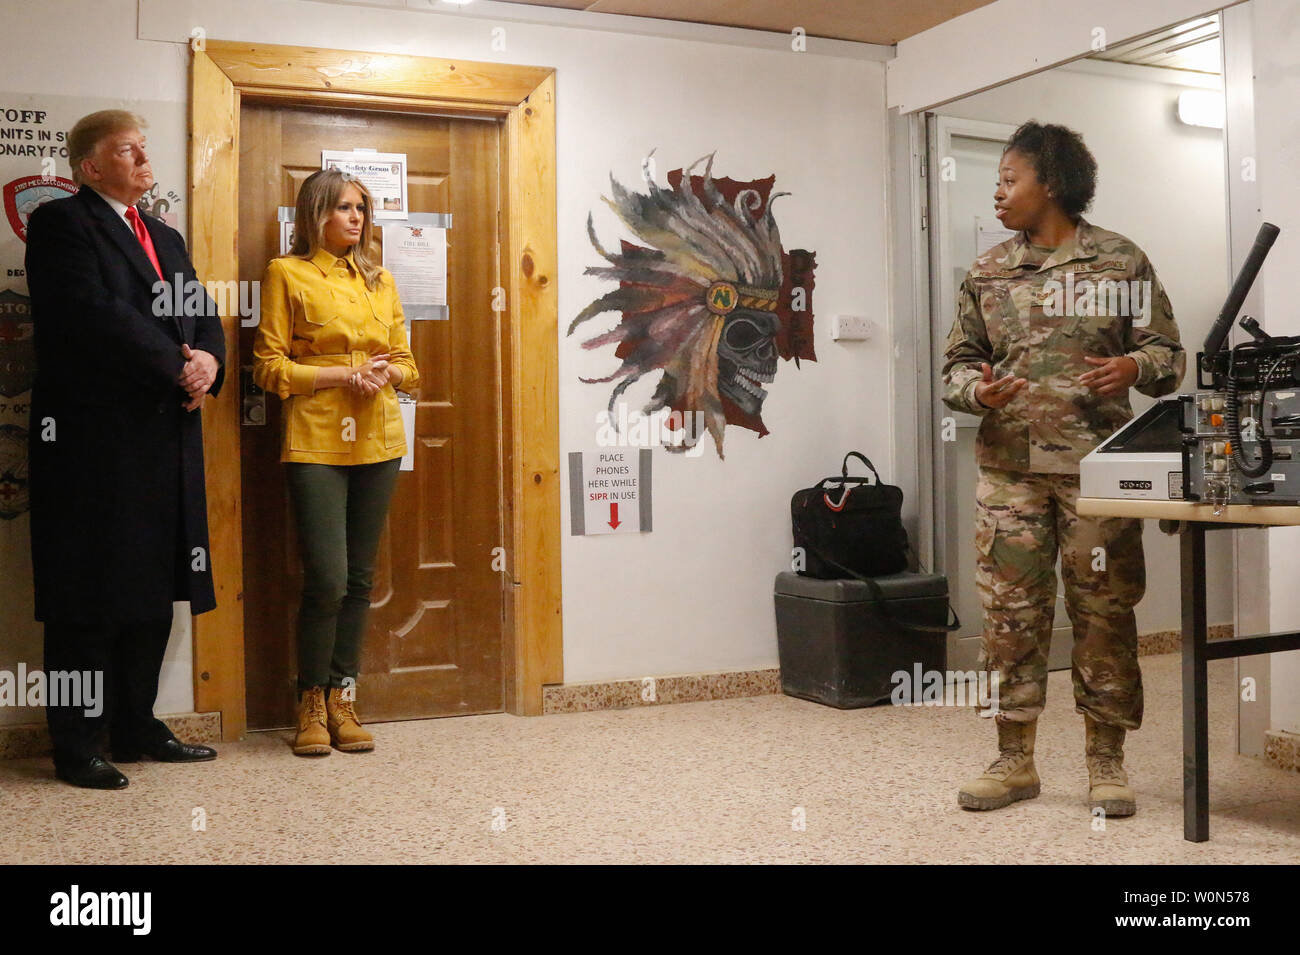 U.S. Air Force Tech. Sgt. Arlandrea Hairston, airfield systems technician assigned to Combined Joint Task Force - Operation Inherent Resolve (CJTF-OIR), explains commonly used airfield technology to U.S. President Donald J. Trump and first lady Melania Trump during their troop visit to Al Asad Air Base, Iraq, December 26, 2018. CJTF-OIR works by, with, and through partner forces to defeat ISIS. Photo by 1st Lt. Leland White/U.S. Army National Guard/UPI Stock Photo